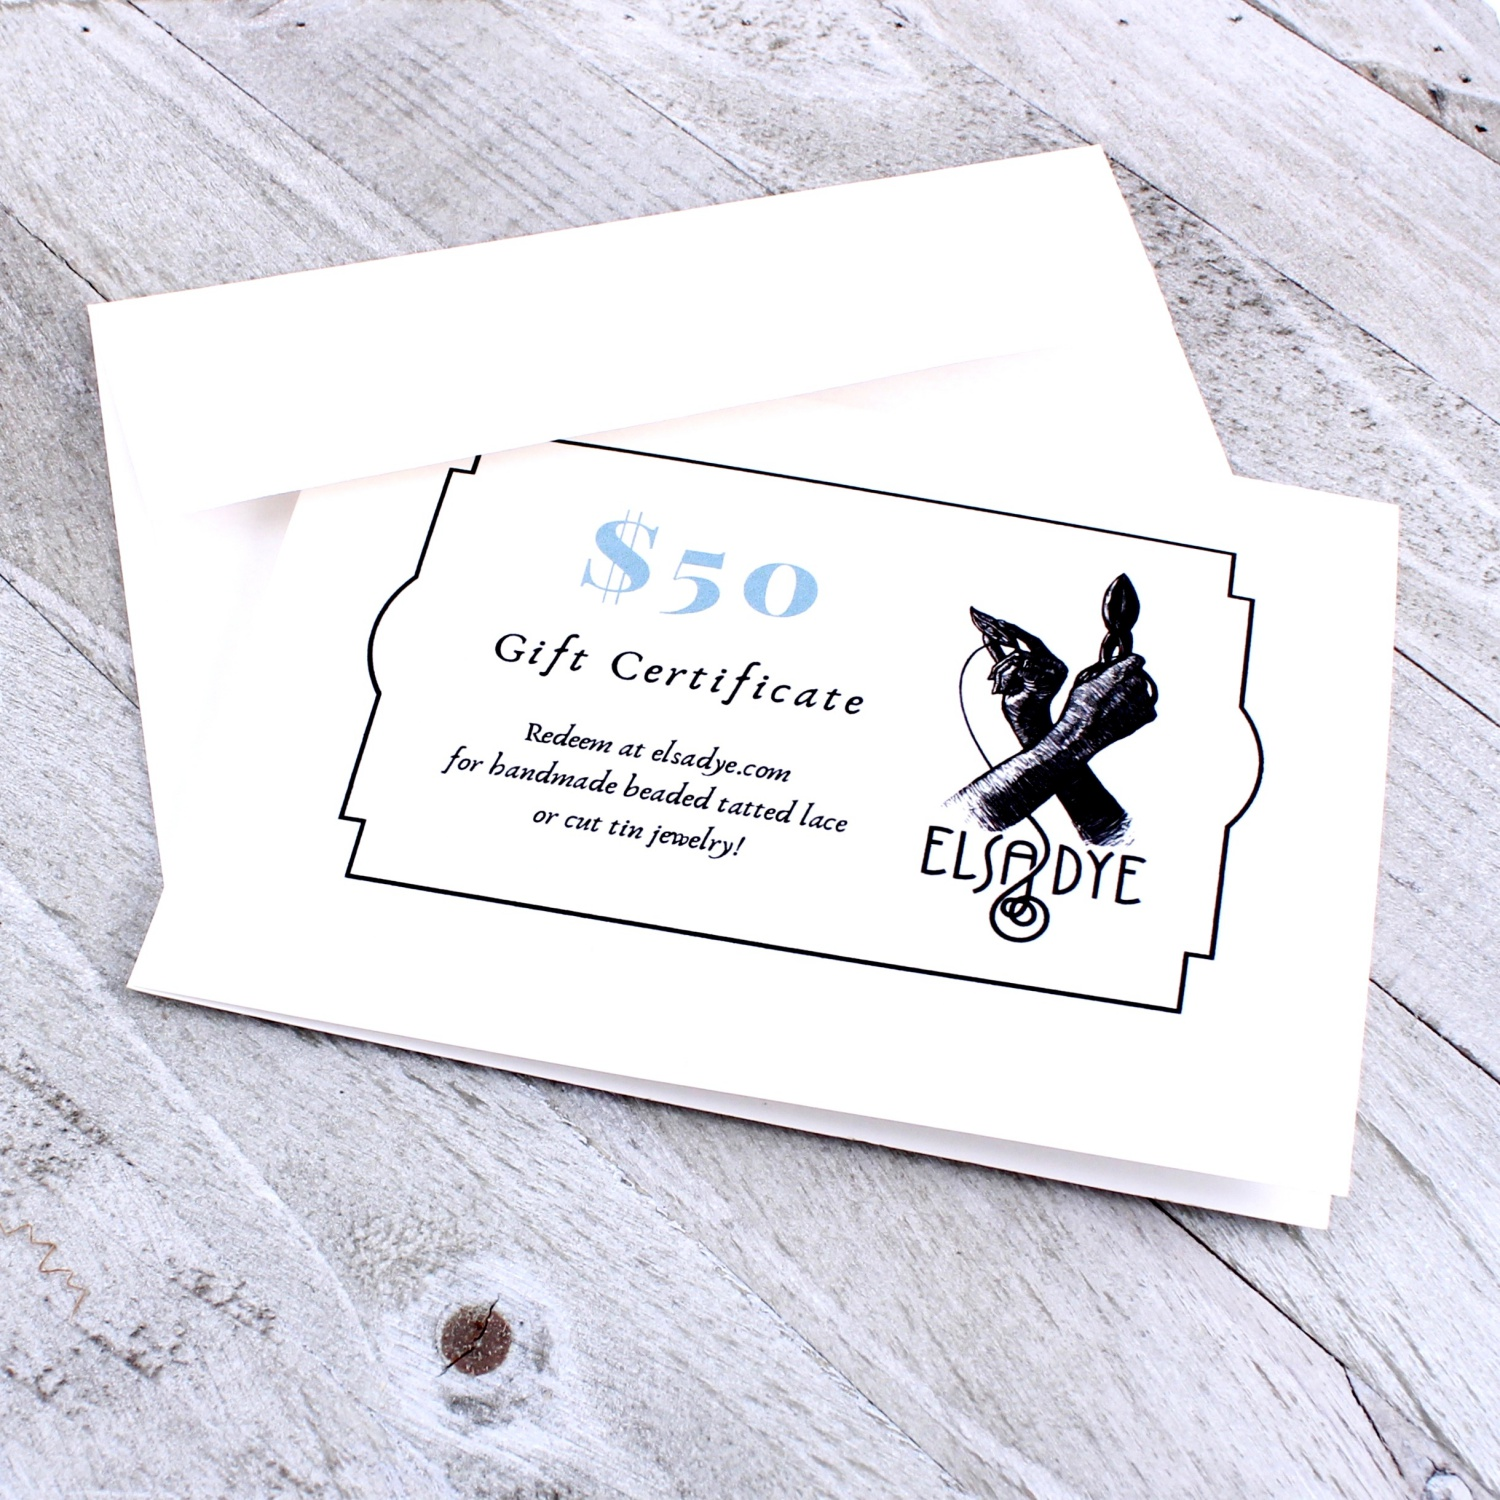 gift_card_front.jpg